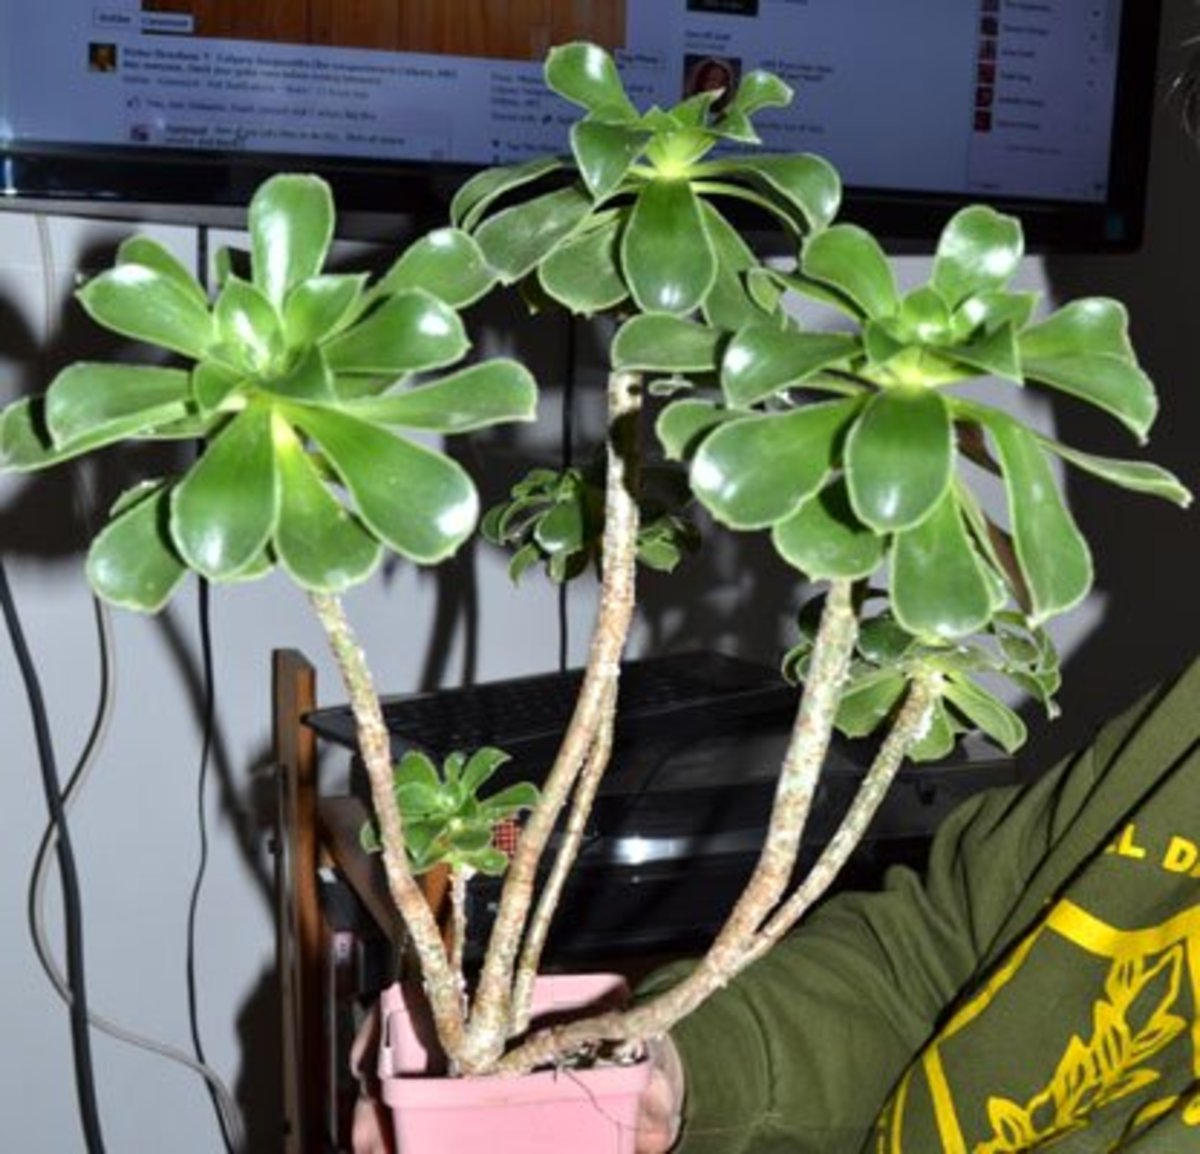 Aeonium balsamiferum like most members of the Crassulaceae family is easy to grow from cuttings.